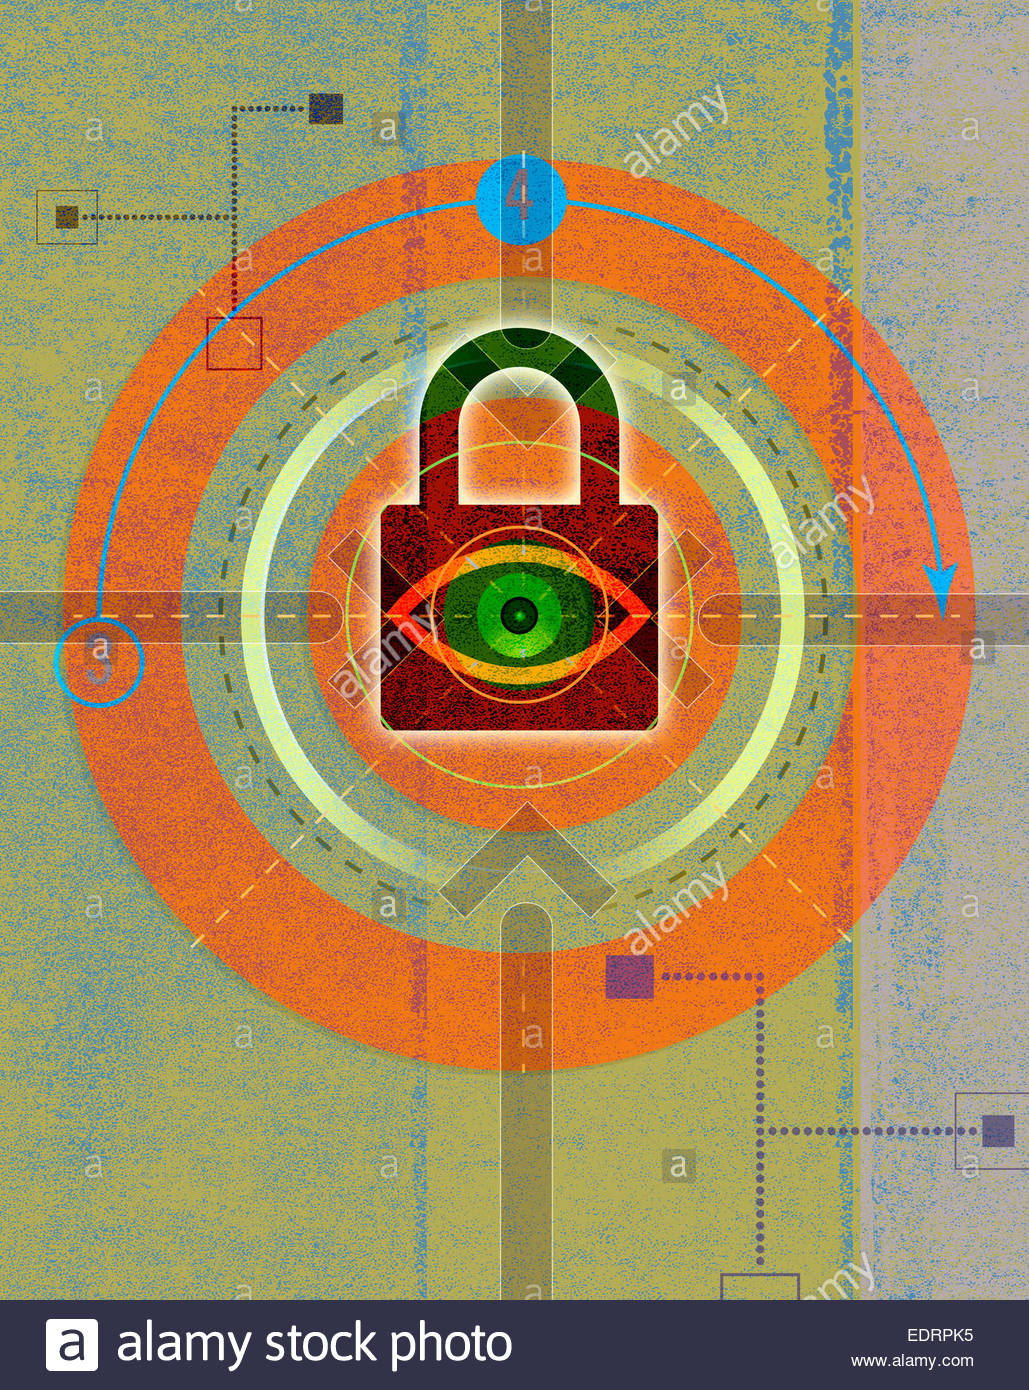 Eye looking through padlock in abstract network pattern - Stock Image